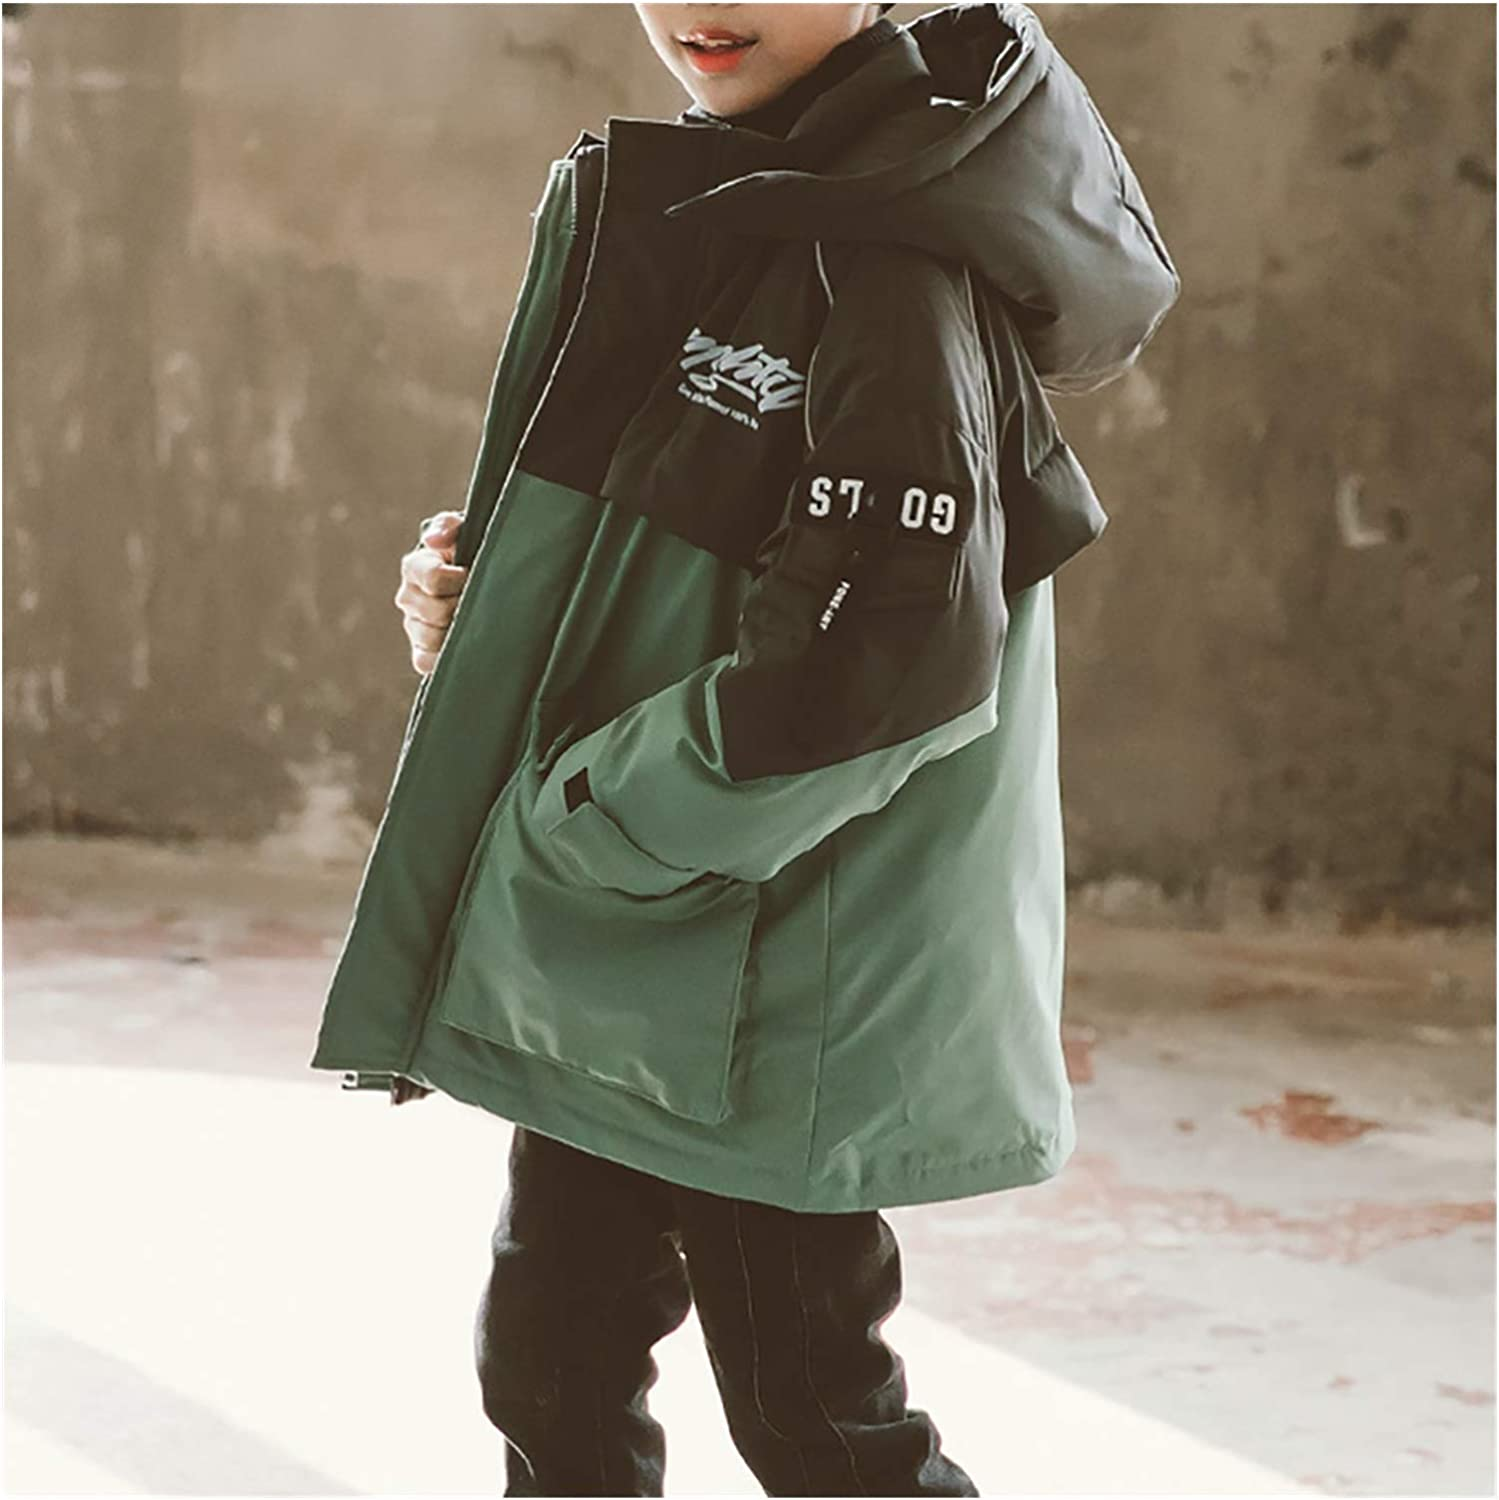 Warm Clothes Boys' Outerwear Jackets Coats Girls' Parkas Puffer Jacket Quilt Lined Jacket Thicken Coat Universal (Color : Green|,| Size : X-Large)